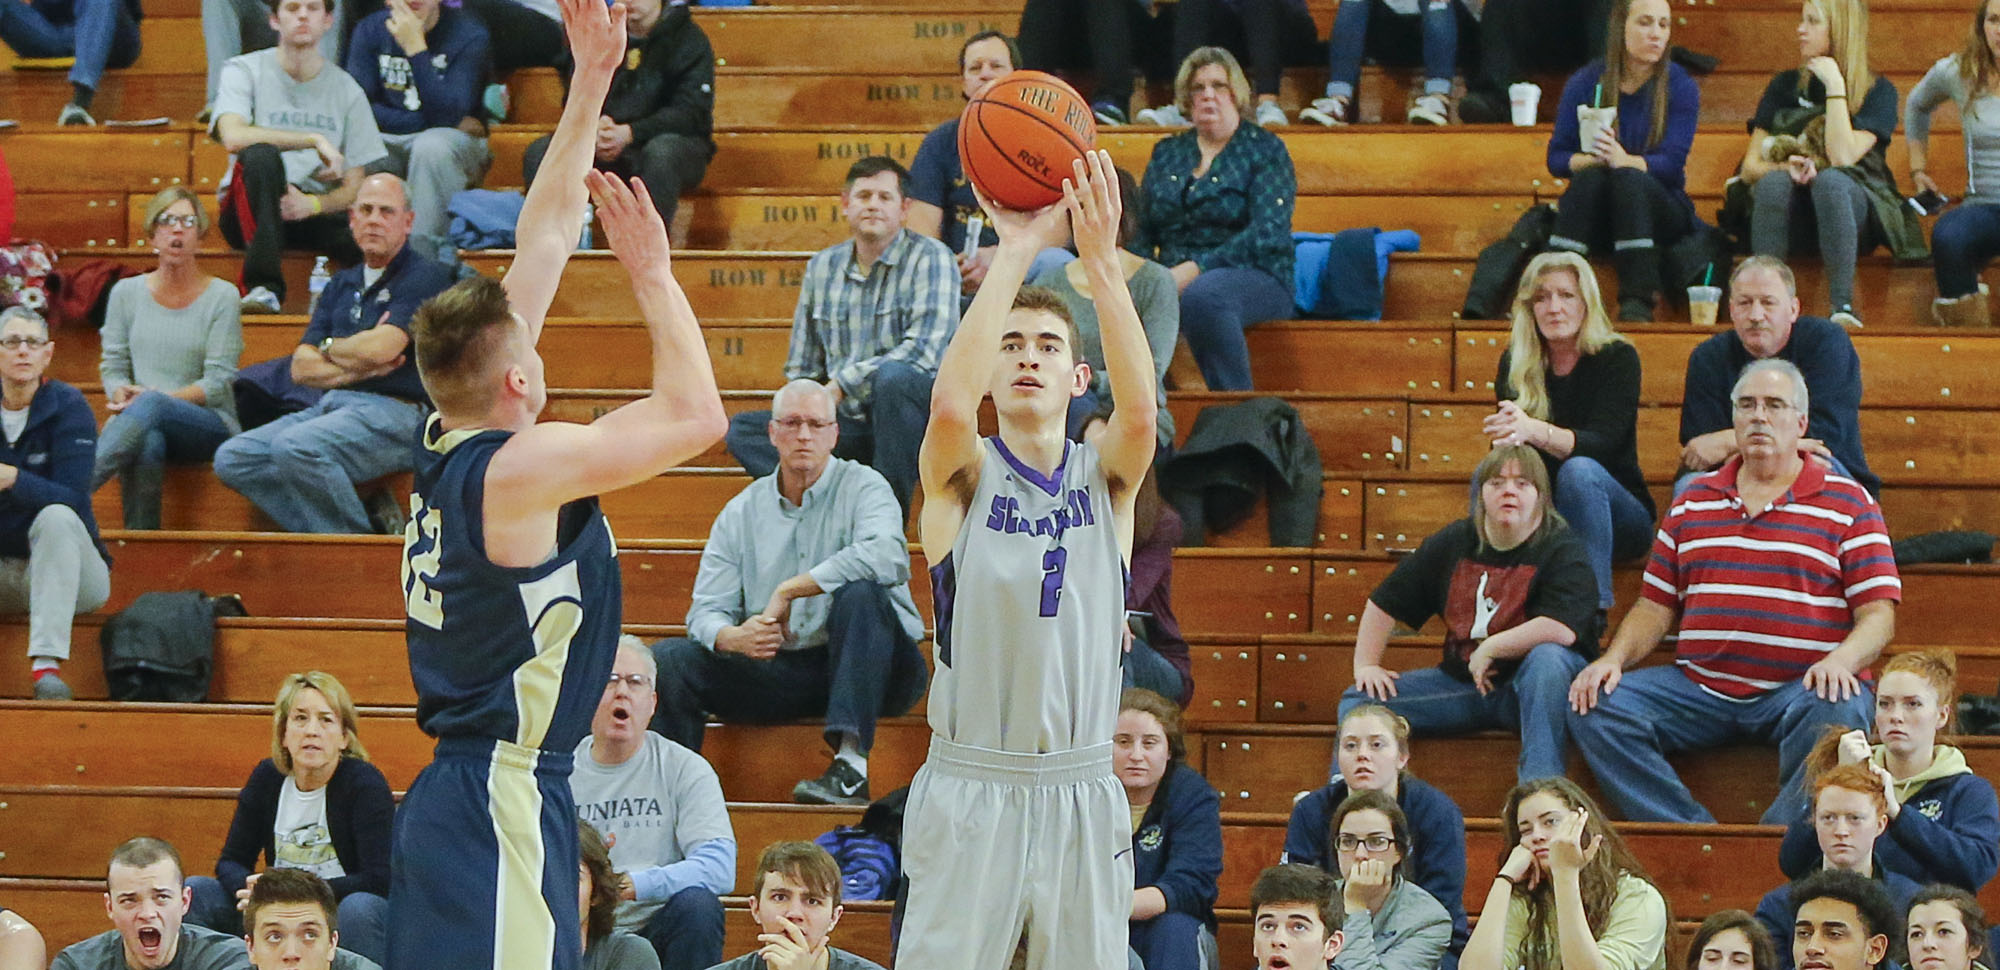 Junior guard Ethan Danzig's clutch four-point play late in the second half helped spark the Royals past 15th-ranked Susquehanna on Wednesday night.